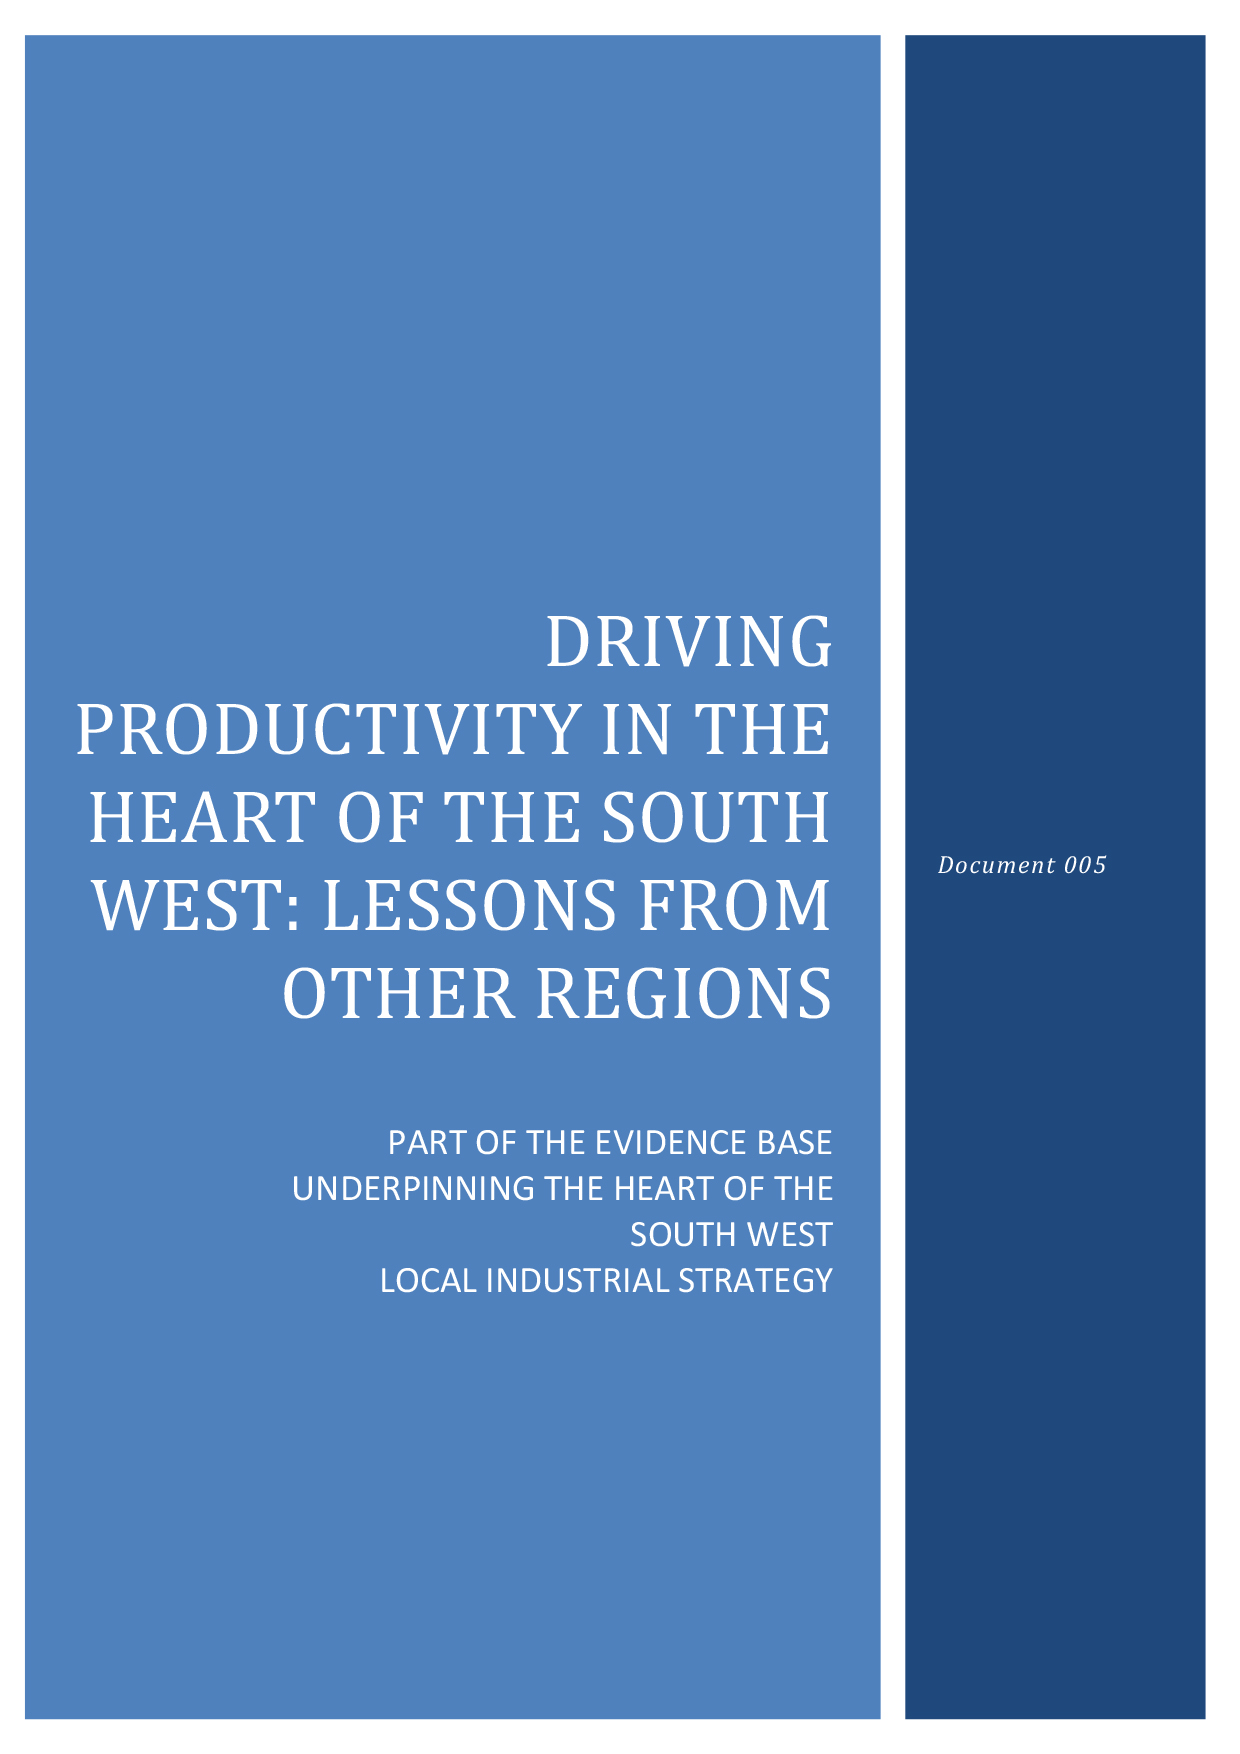 Microsoft Word - 005 Driving Productivity in the Heart of the So